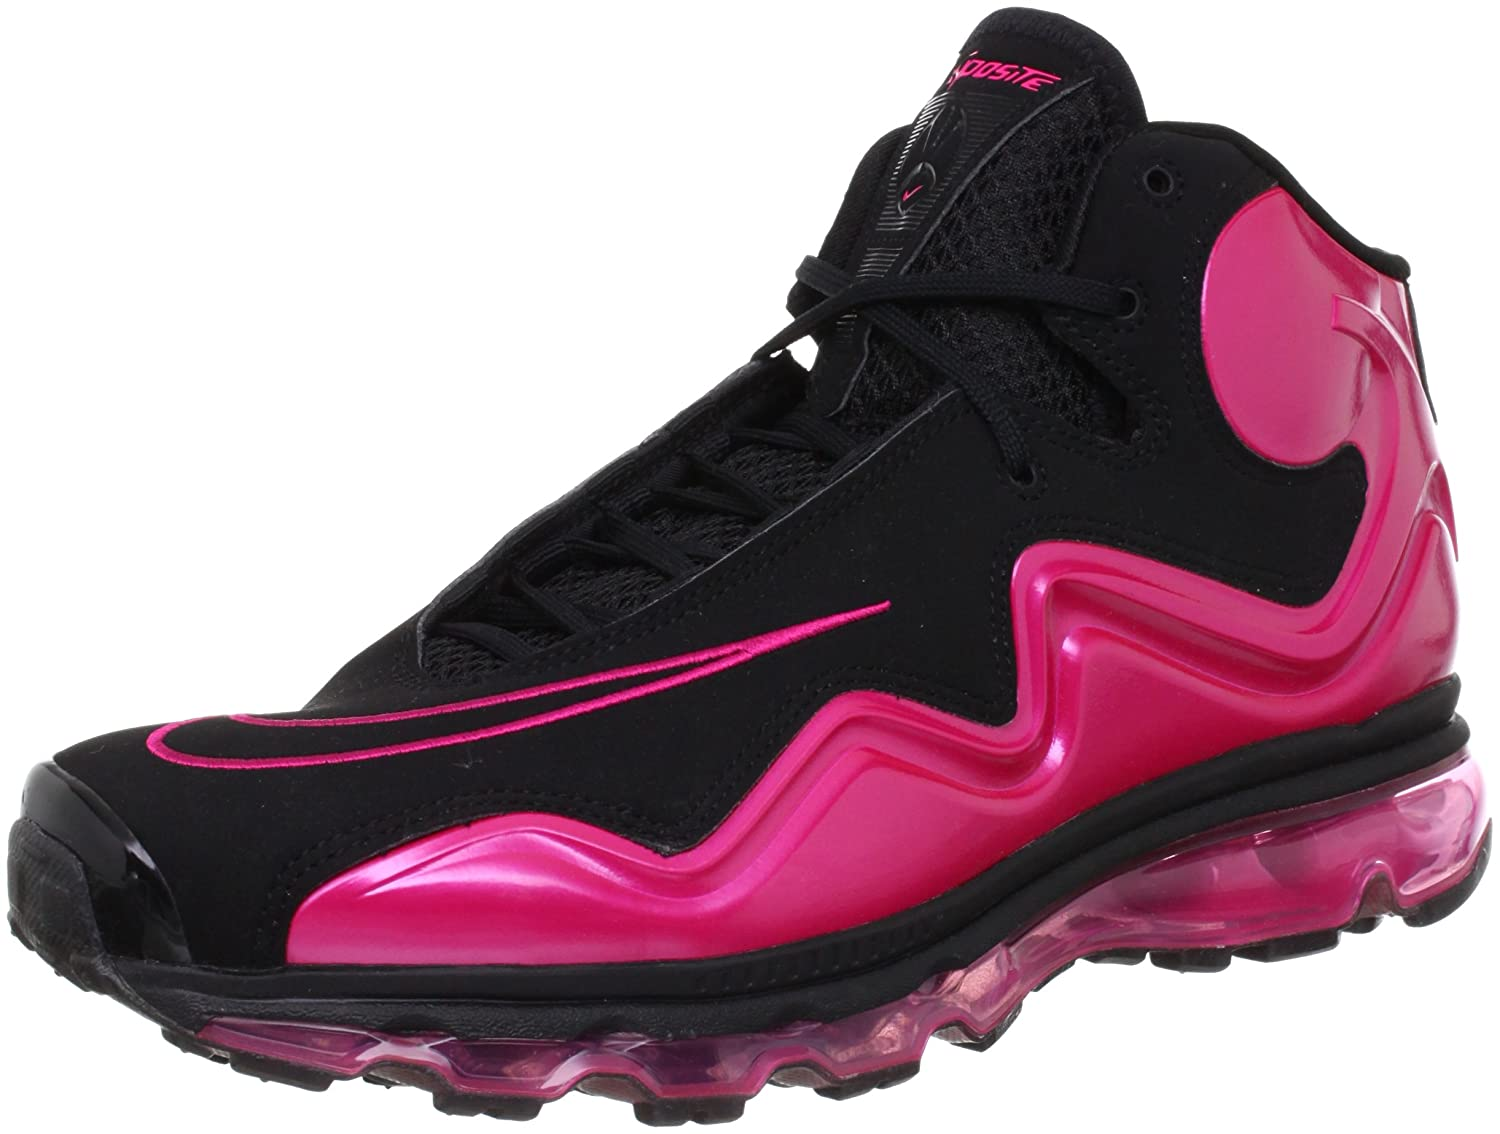 Nike Air Max Flyposite Mens Cross Trainer Shoes at Sears.com